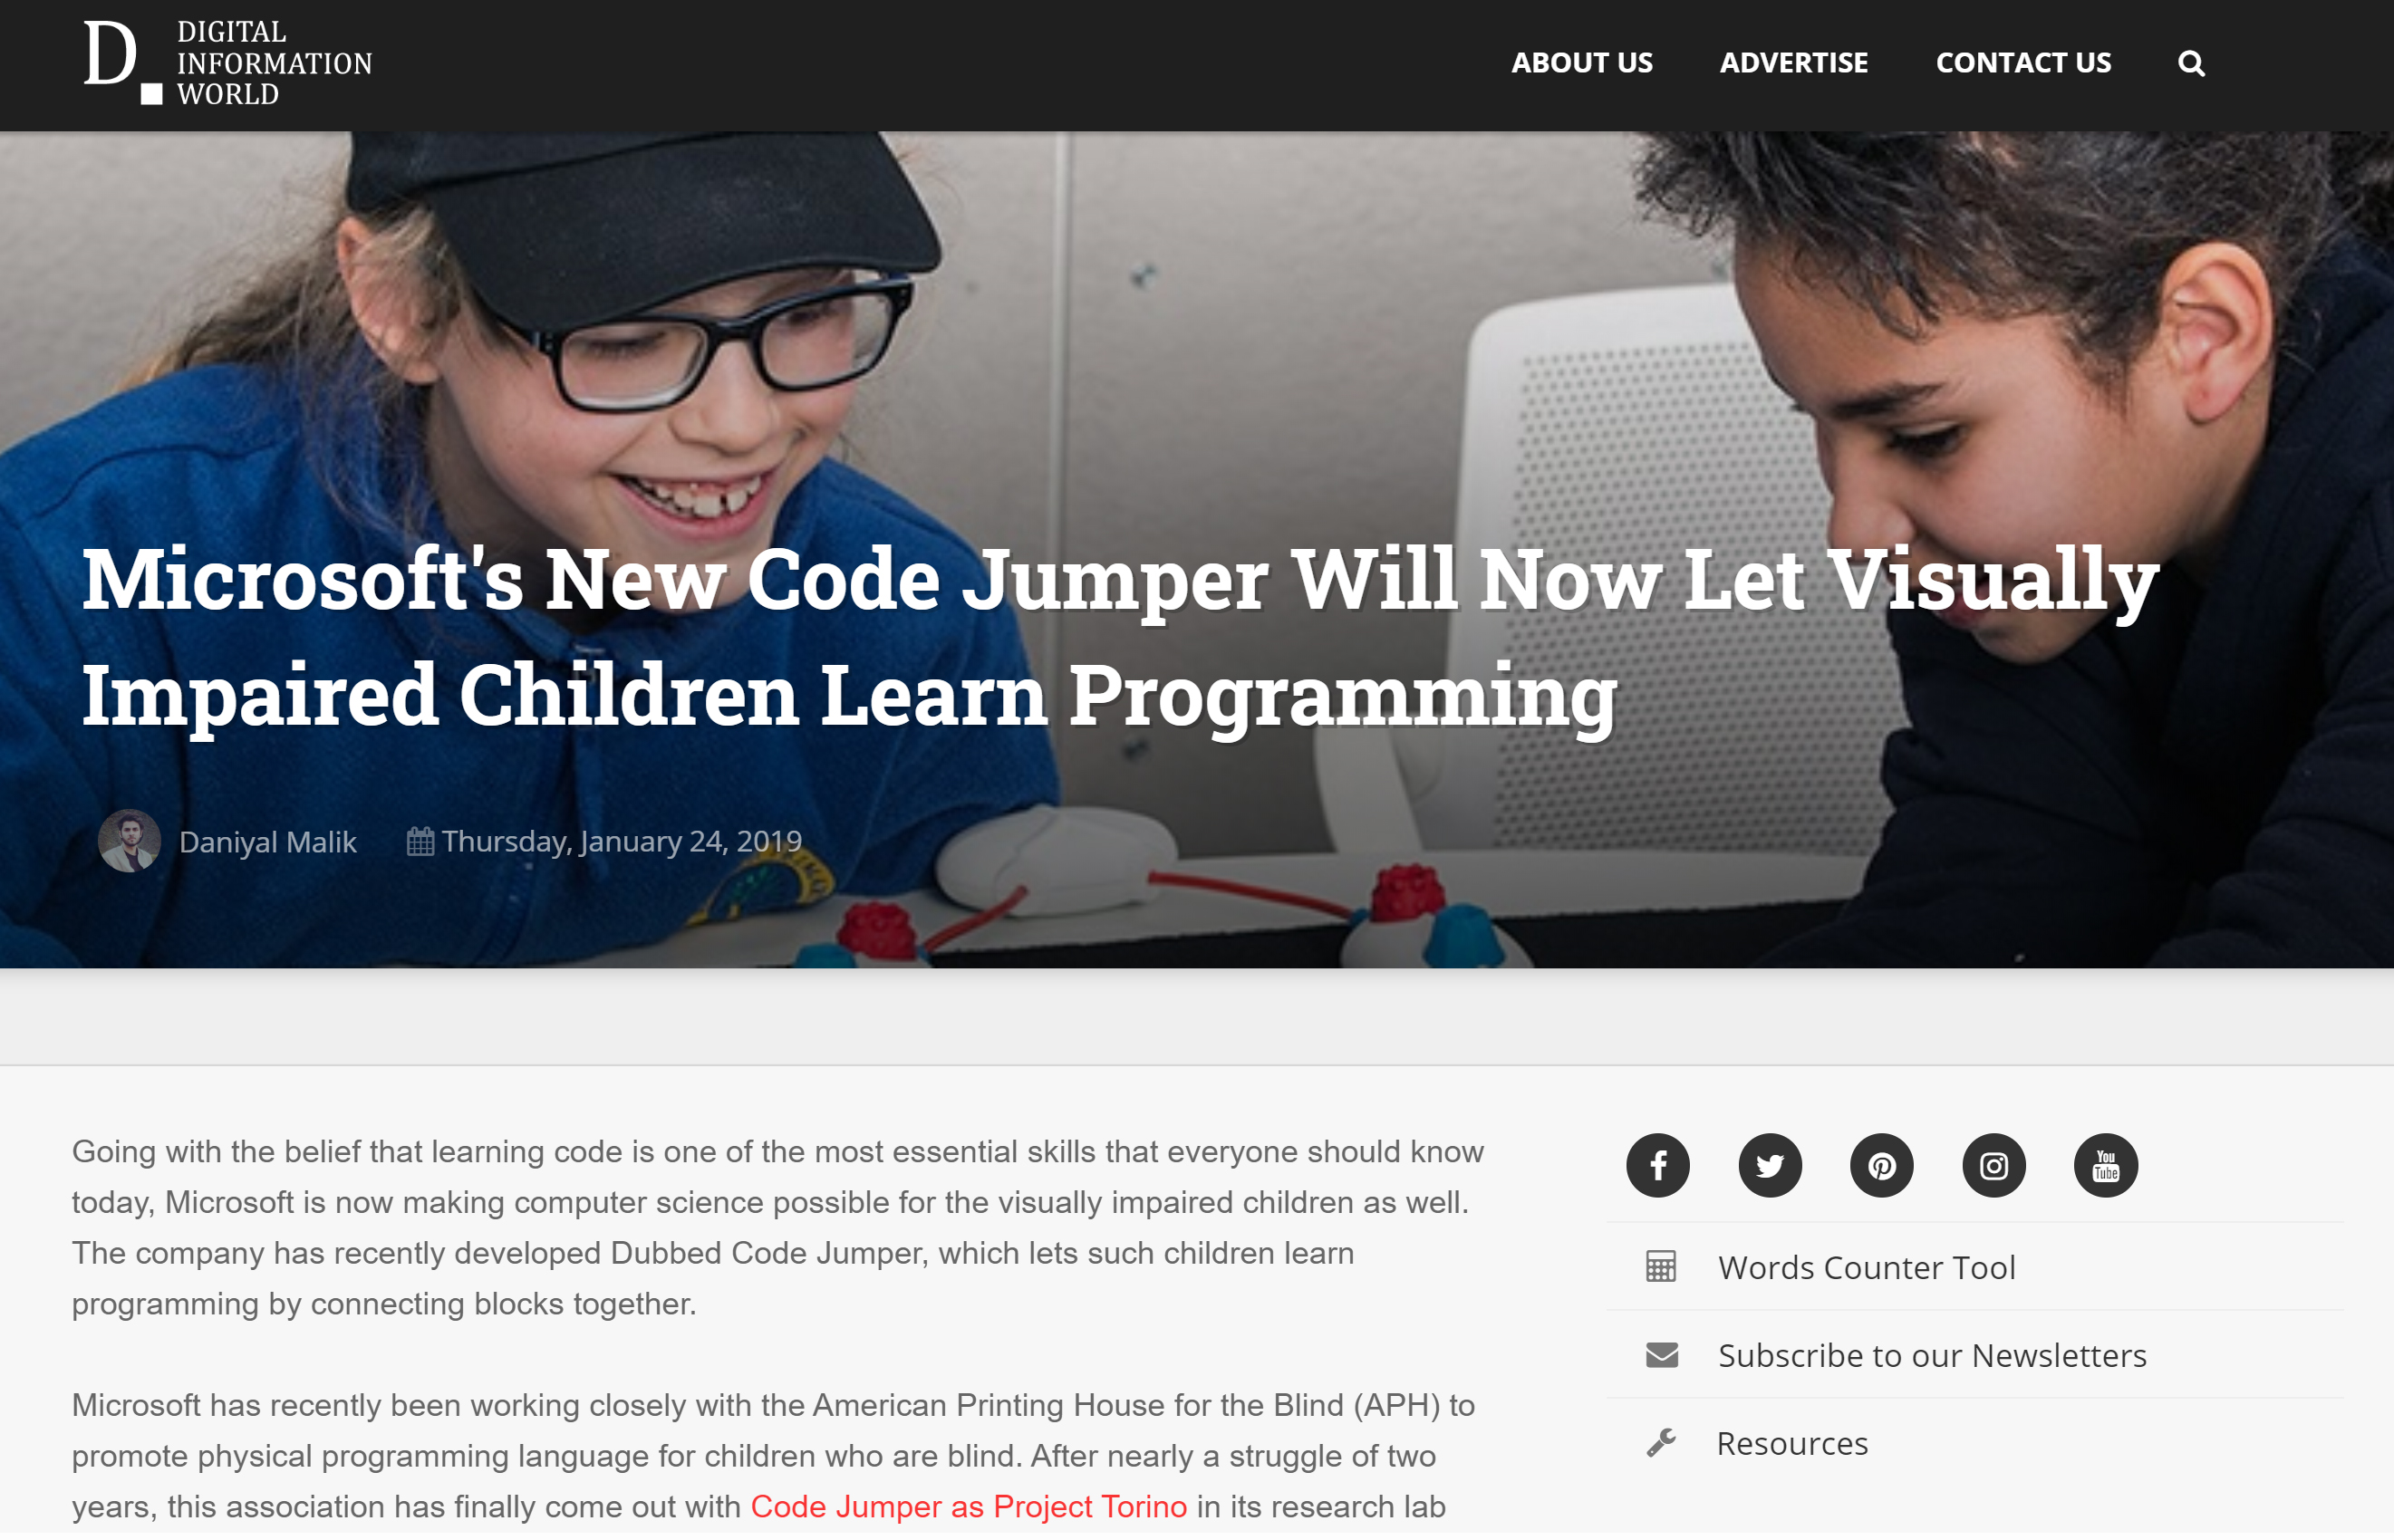 Screenshot of the digital inforamtion world article about Code Jumper